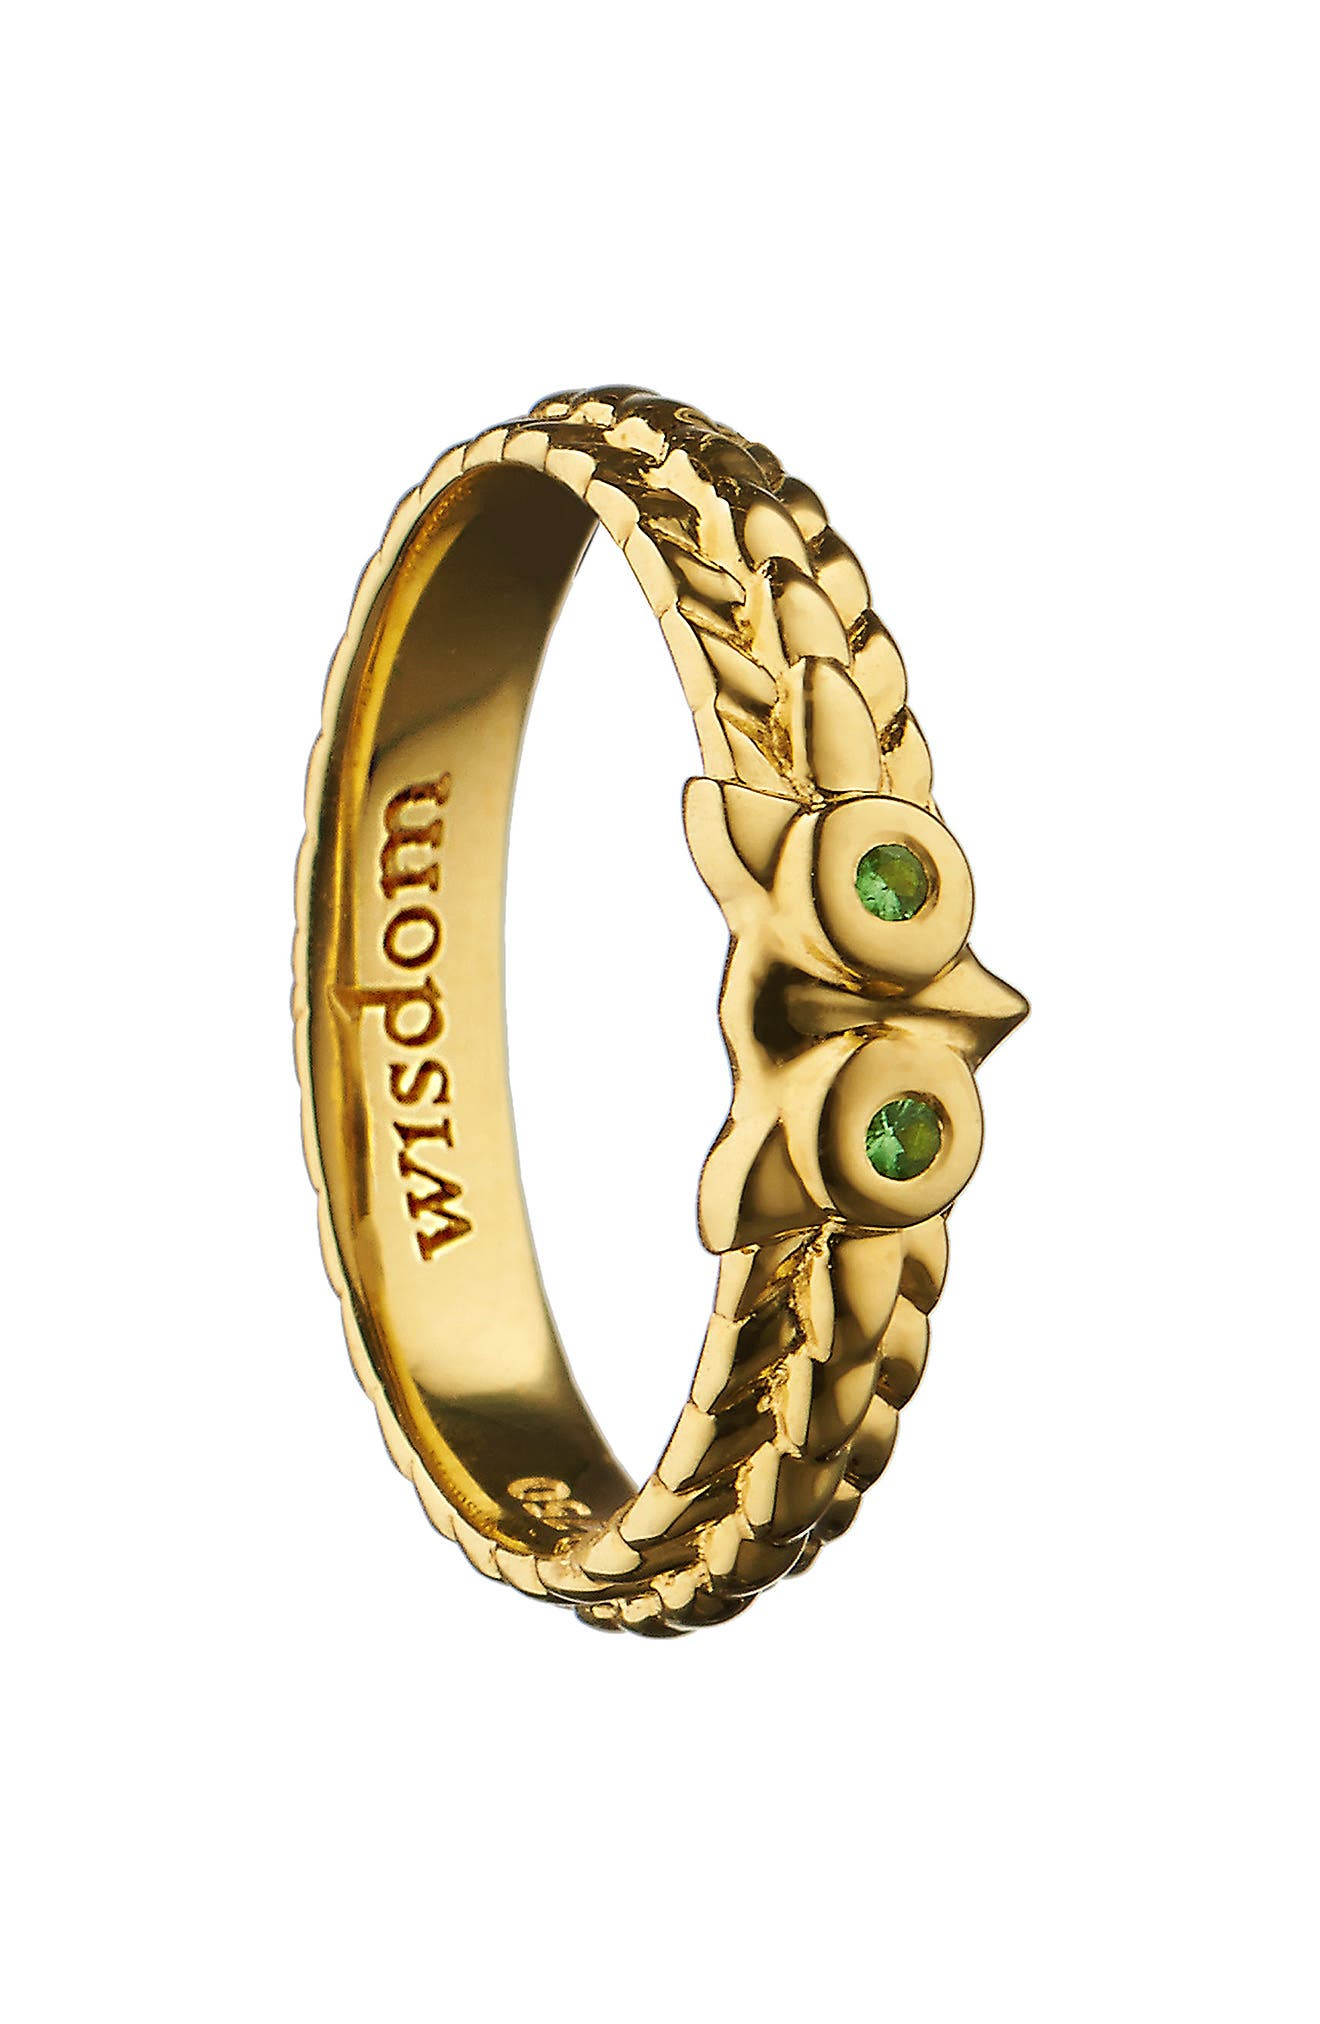 Wisdom Owl Poesy Ring Charm,                             Main thumbnail 1, color,                             18K YELLOW GOLD